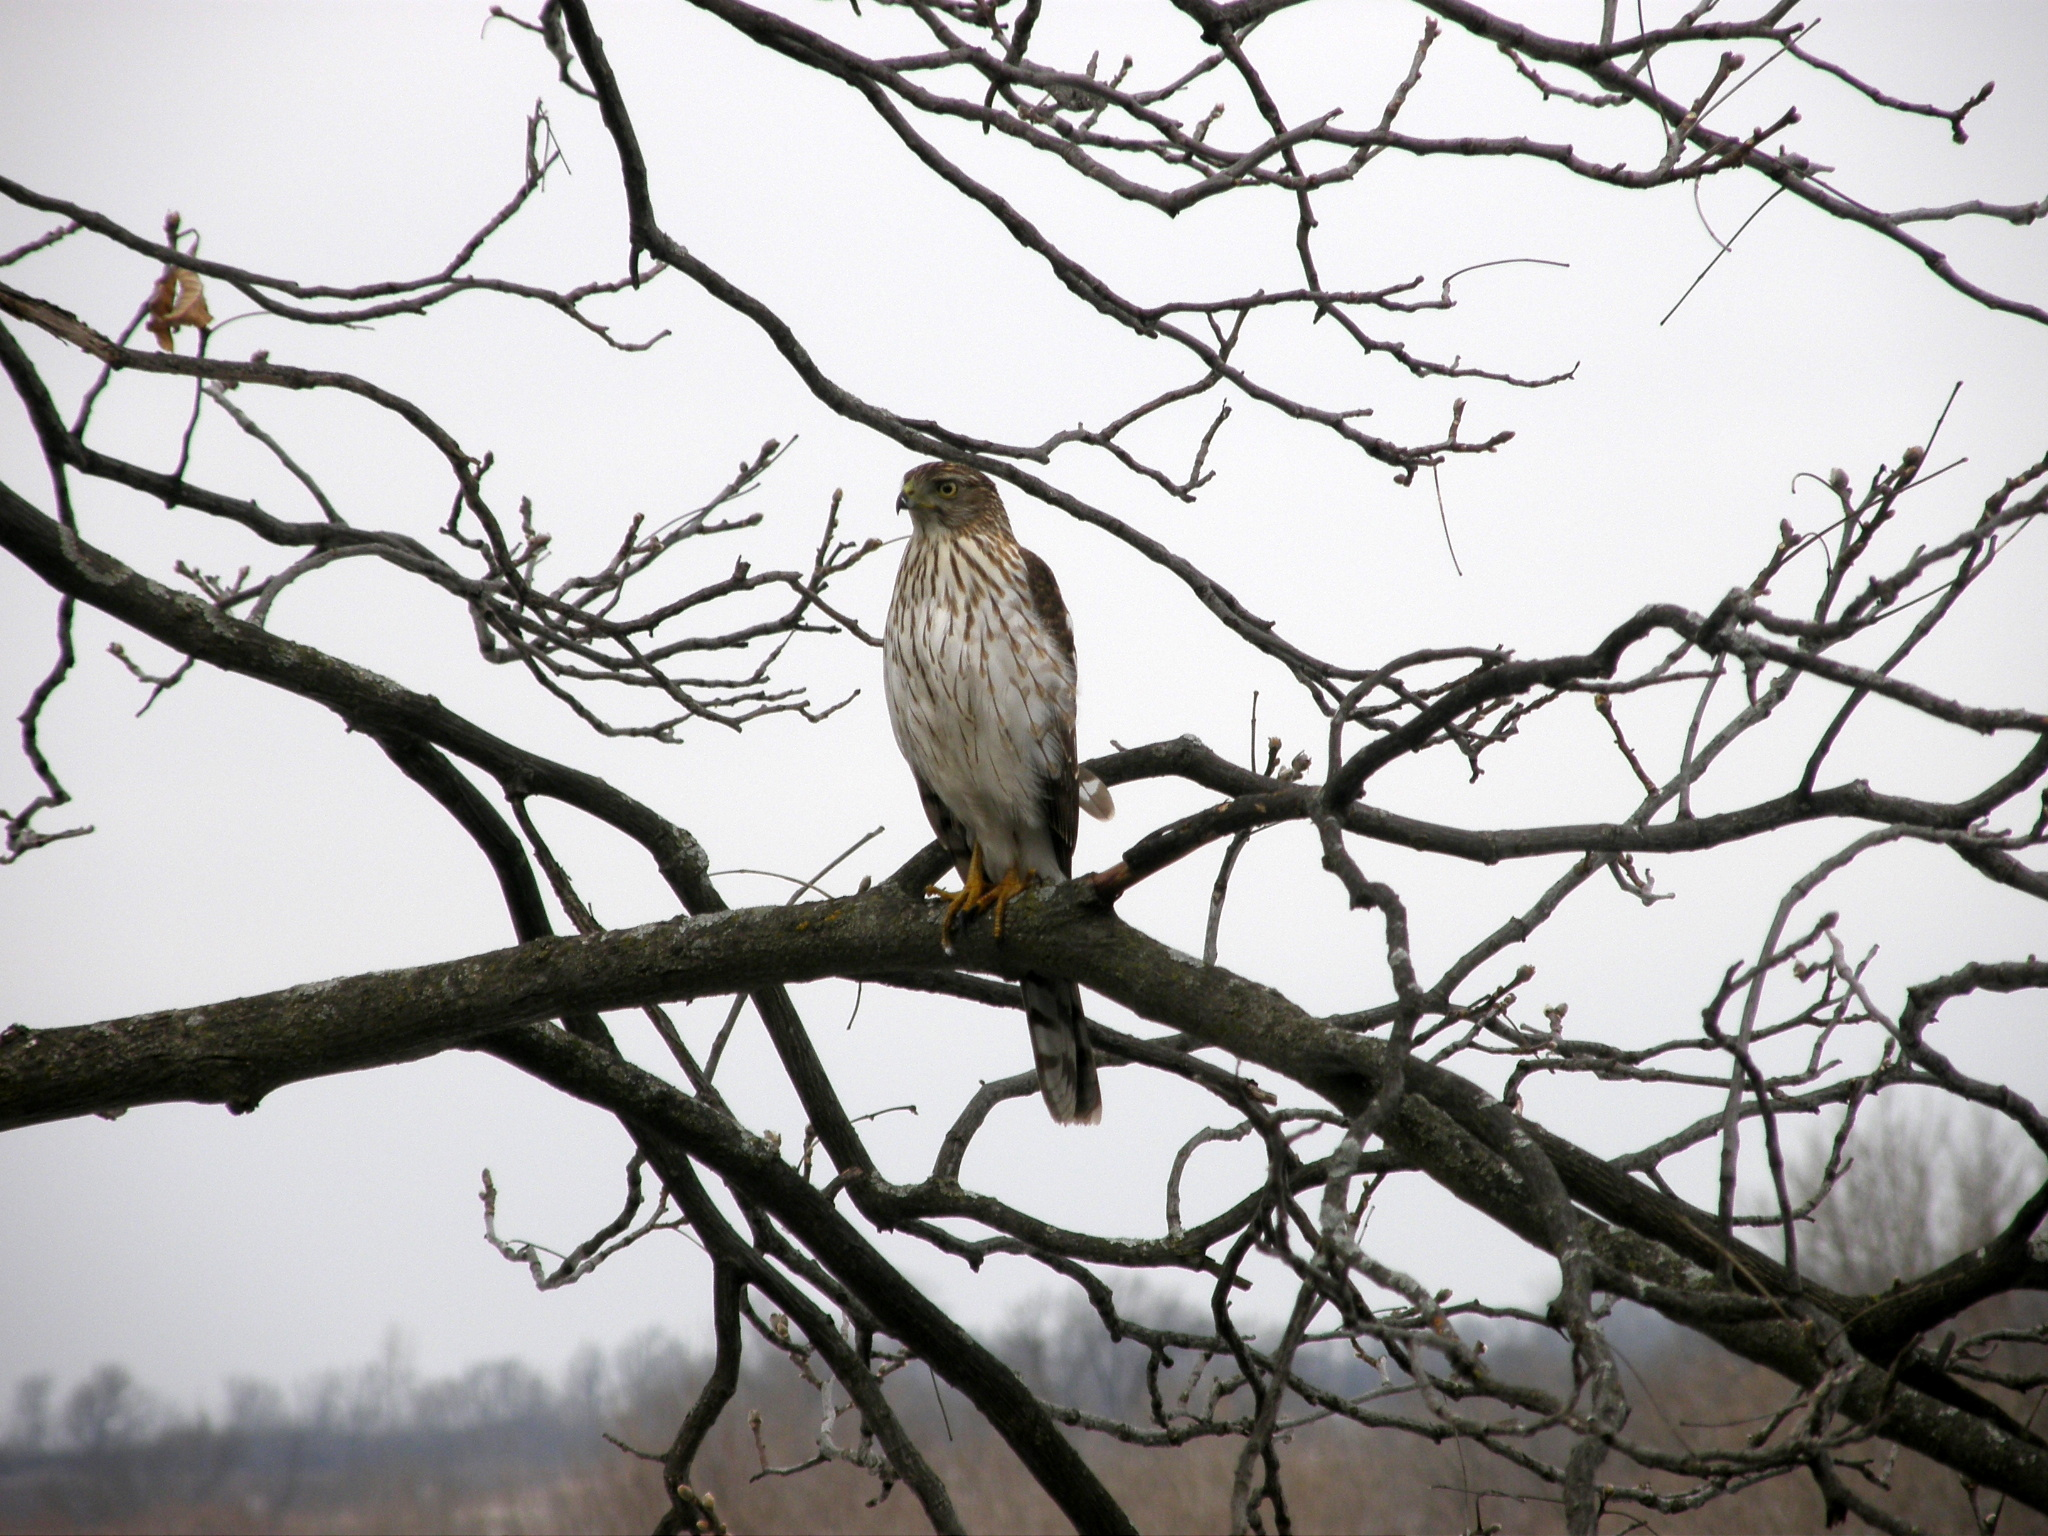 Coopers Hawk watching the Bird Feeders at The Speckled hen Inn